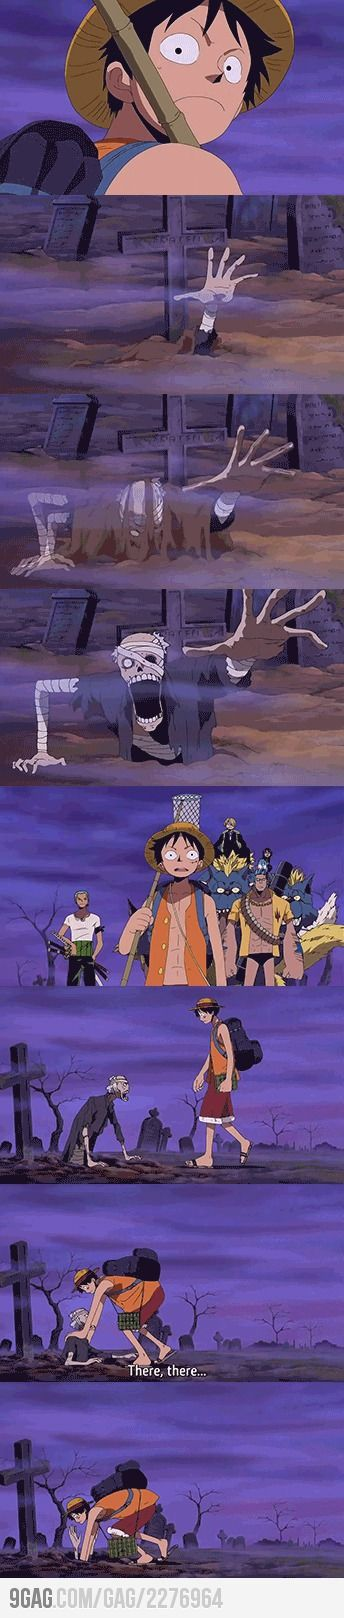 Luffy vs zombies... Now we know what to do when the apocolypse comes haha xD I love Luffy so much! He's so simple!